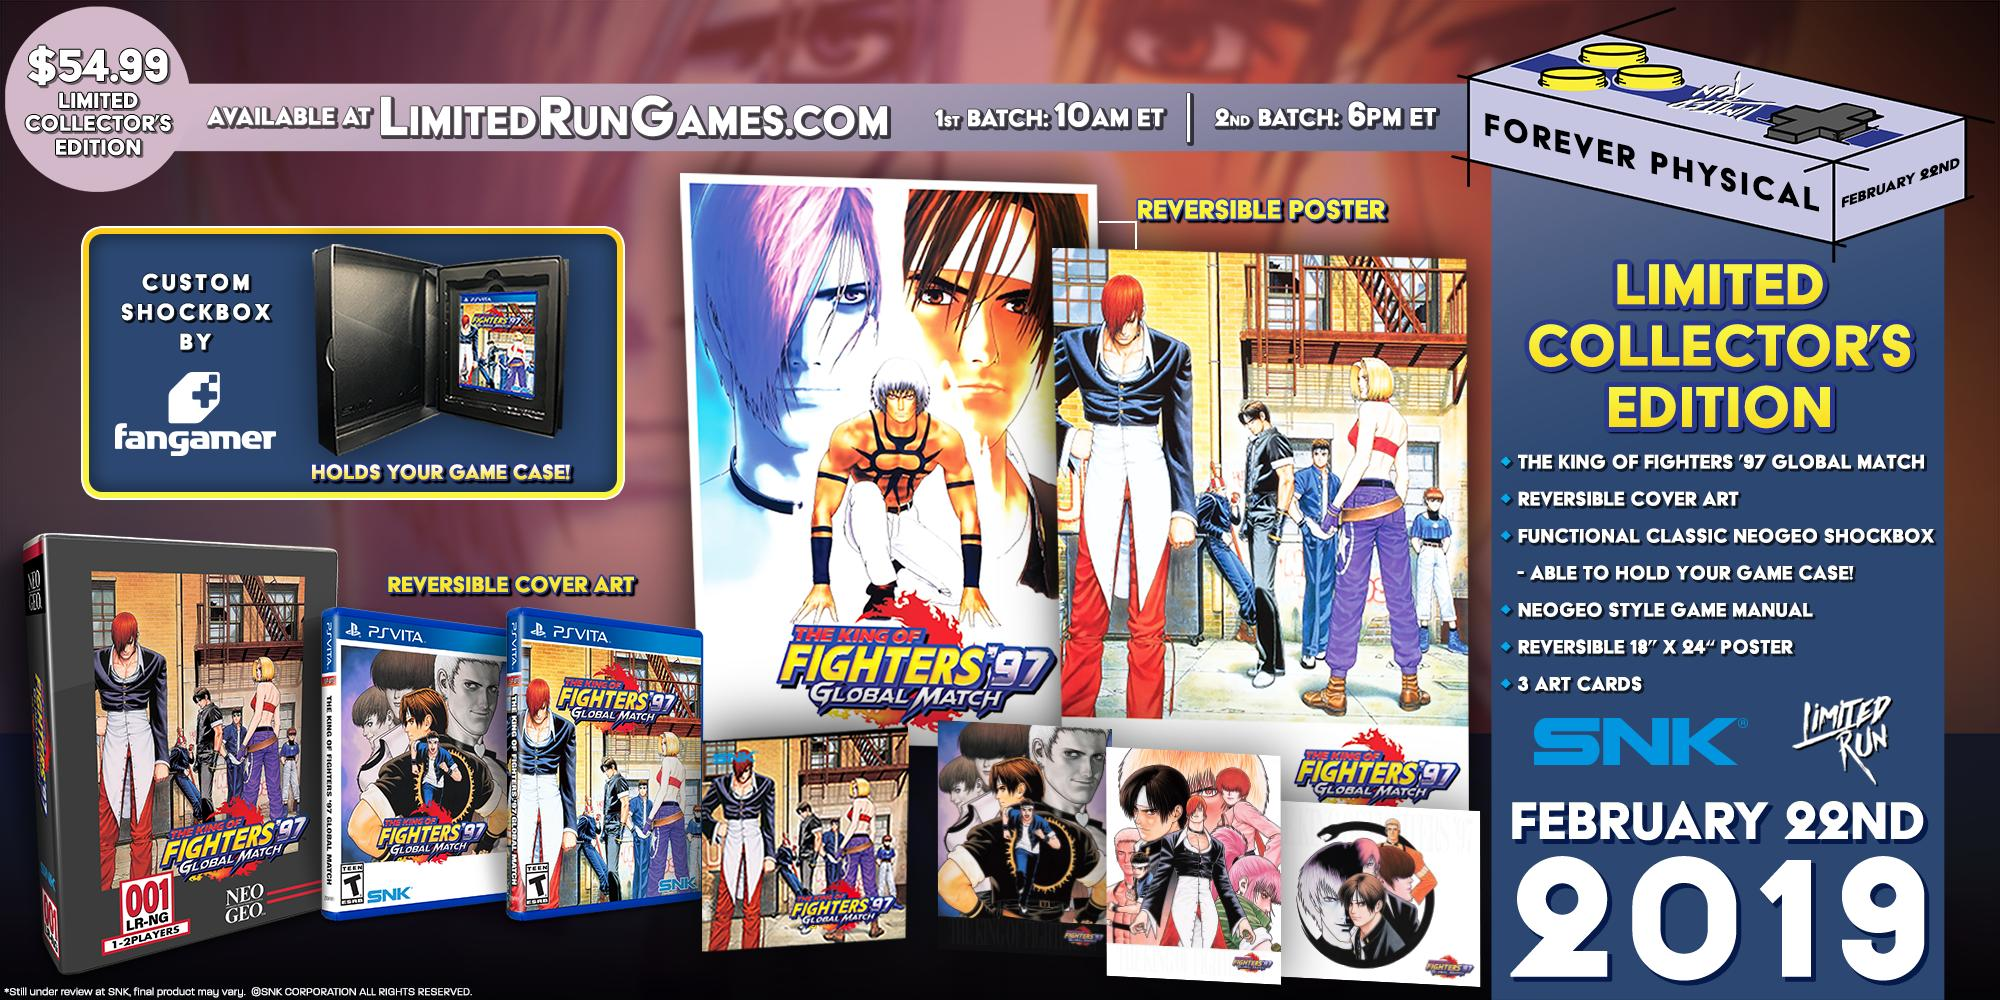 Limited Physical Versions Announced For The King Of Fighters 97